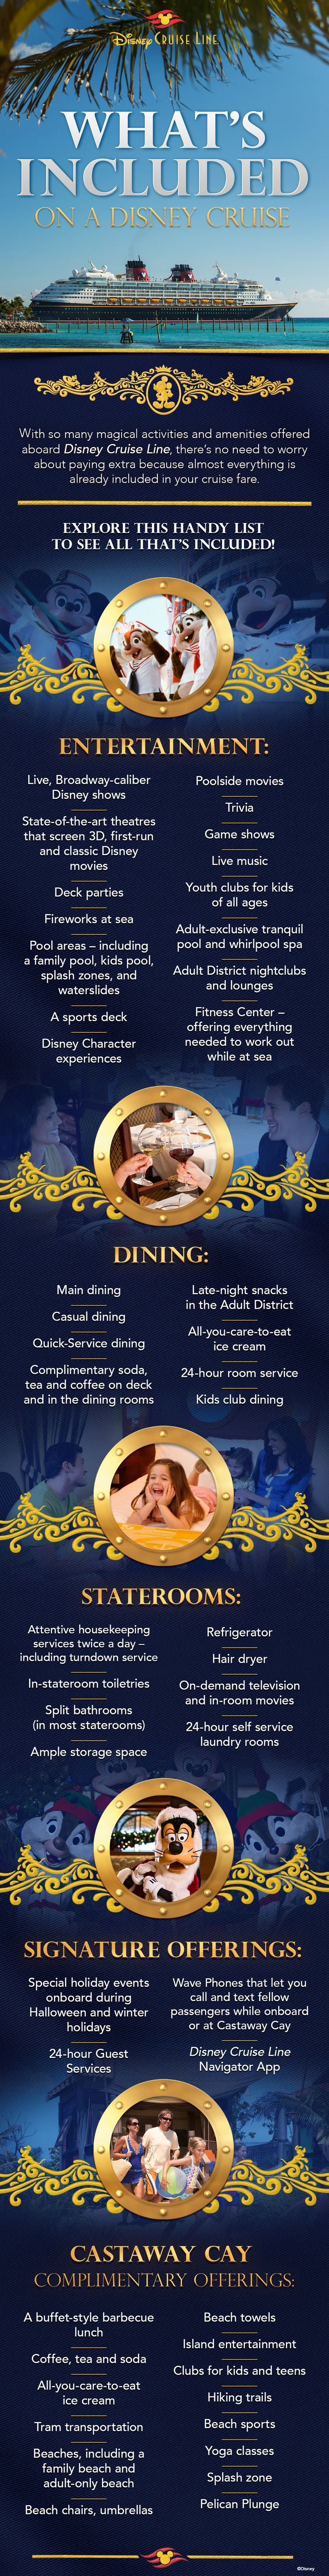 With so many magical activities and amenities offered aboard Disney Cruise Line, there's no need to worry about paying extra because almost everything is already included in your cruise fare.